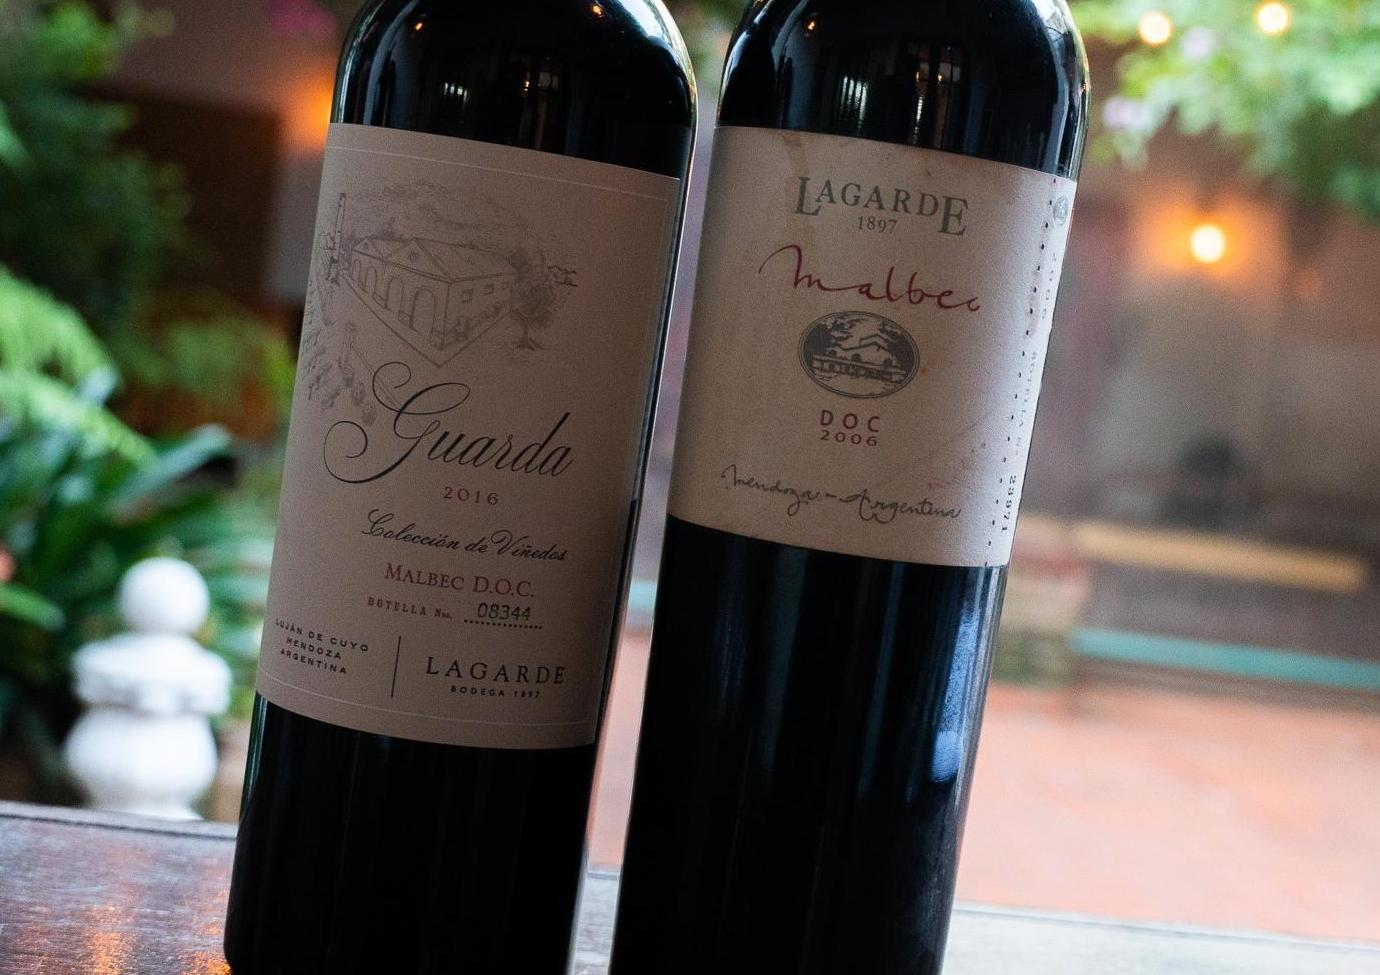 Lagarde Guarda Malbec DOC 2016 y Lagarde Guarda Malbec DOC 2006